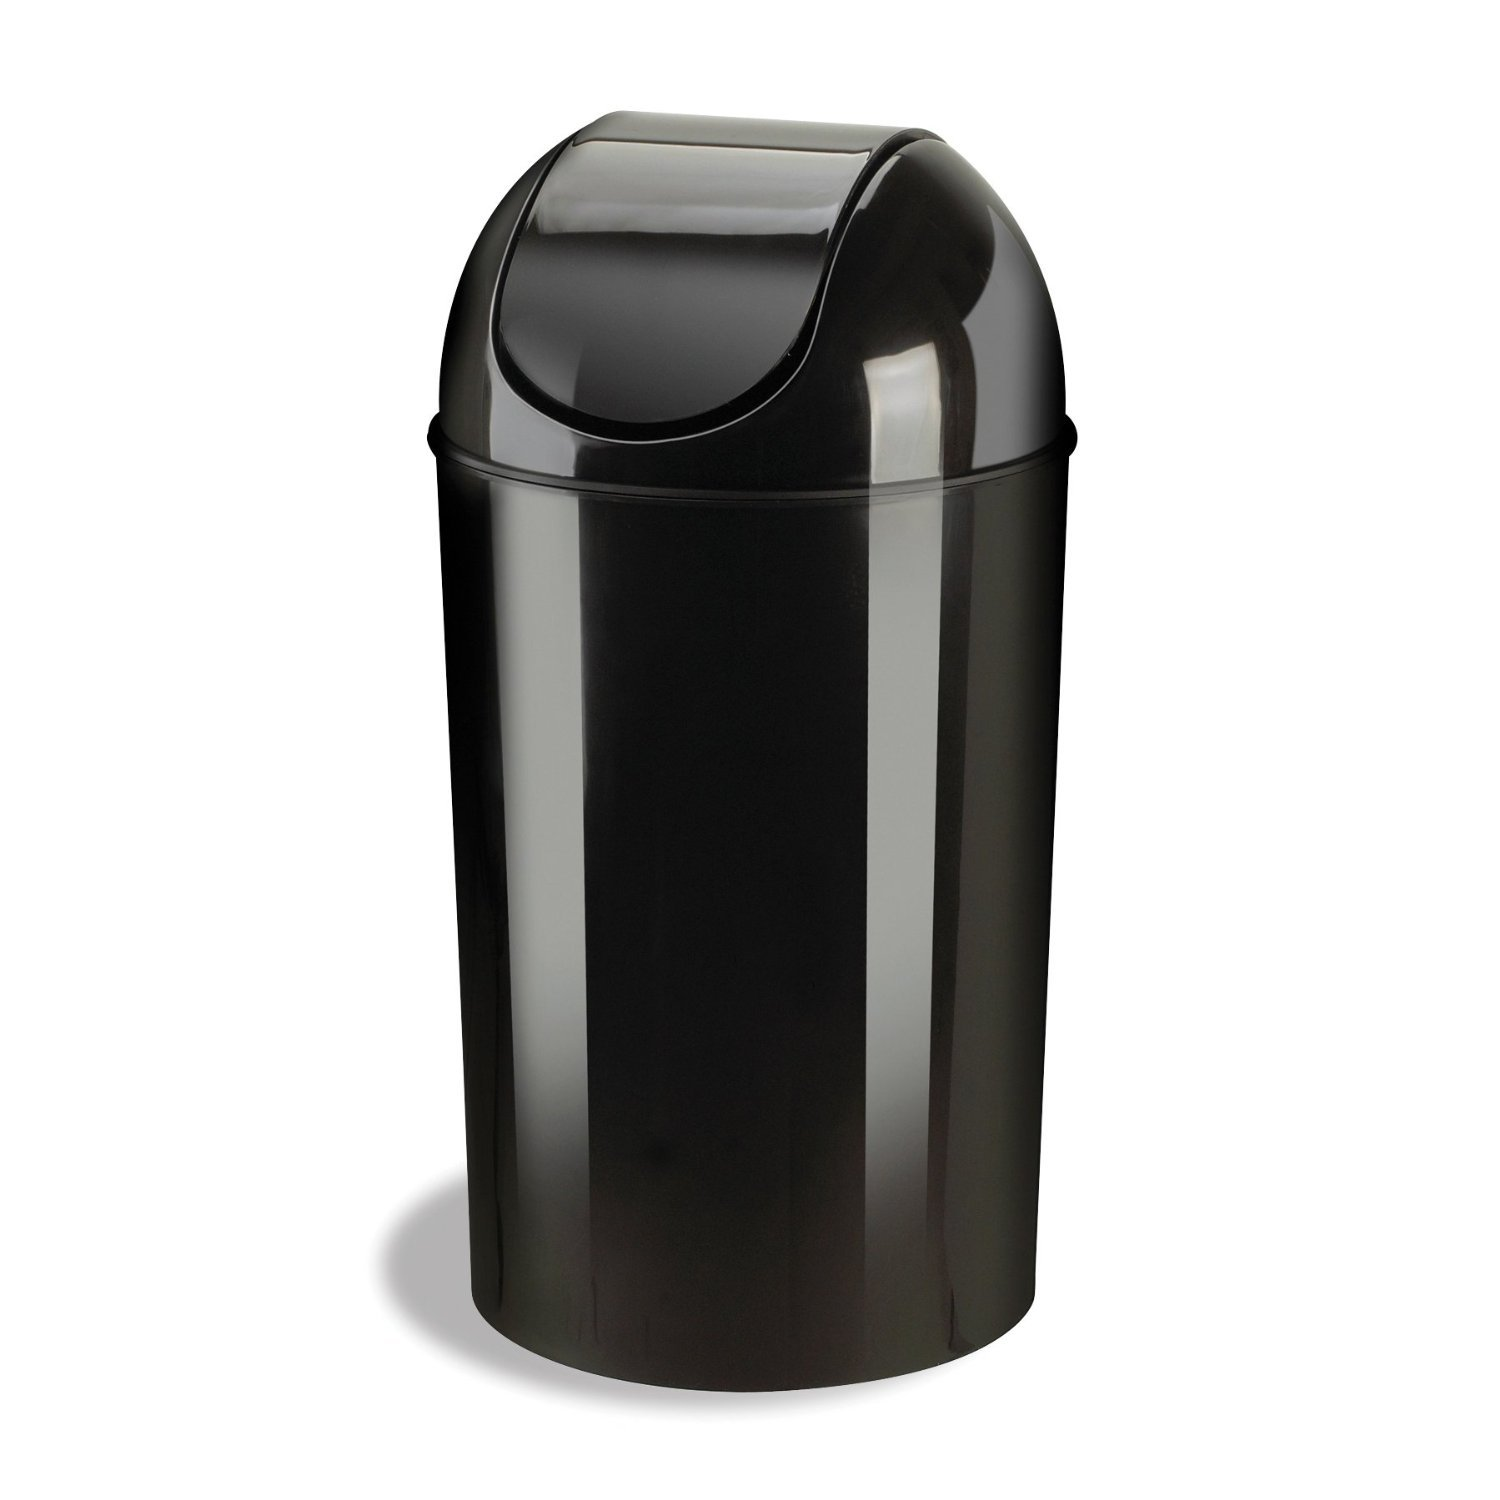 bo of umbra grand 10 gallon recycling trash can